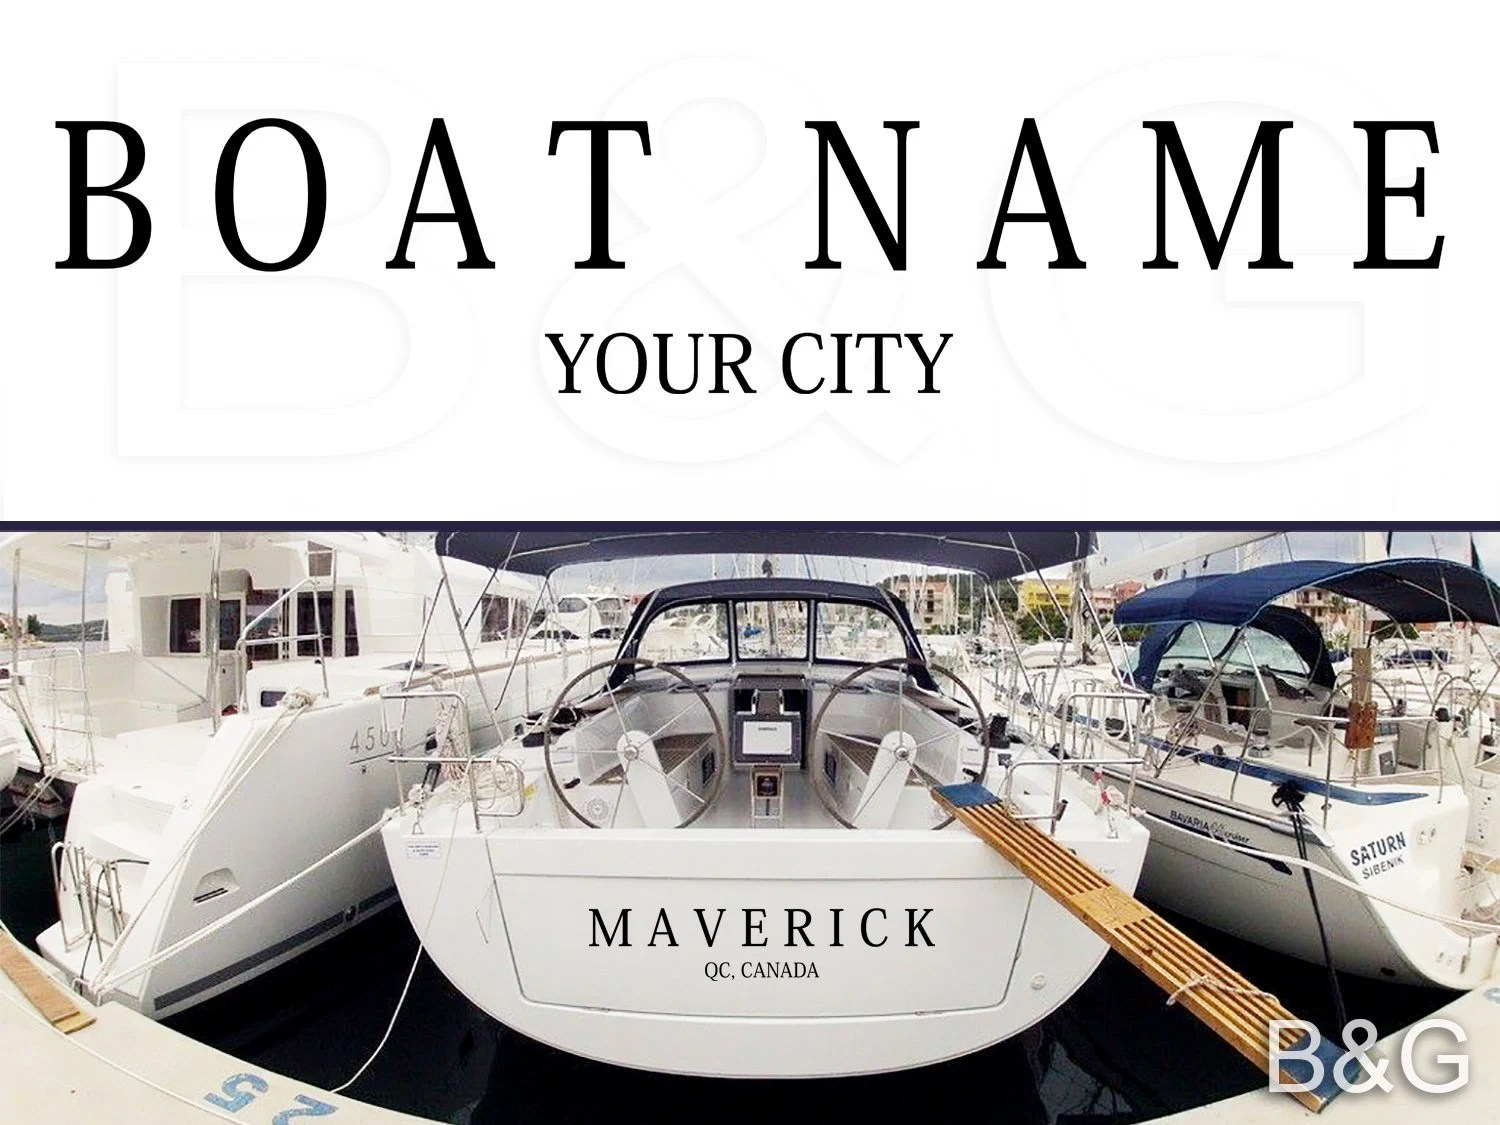 Custom Boat Name Decal  Boat name Personalized Decals  image 1